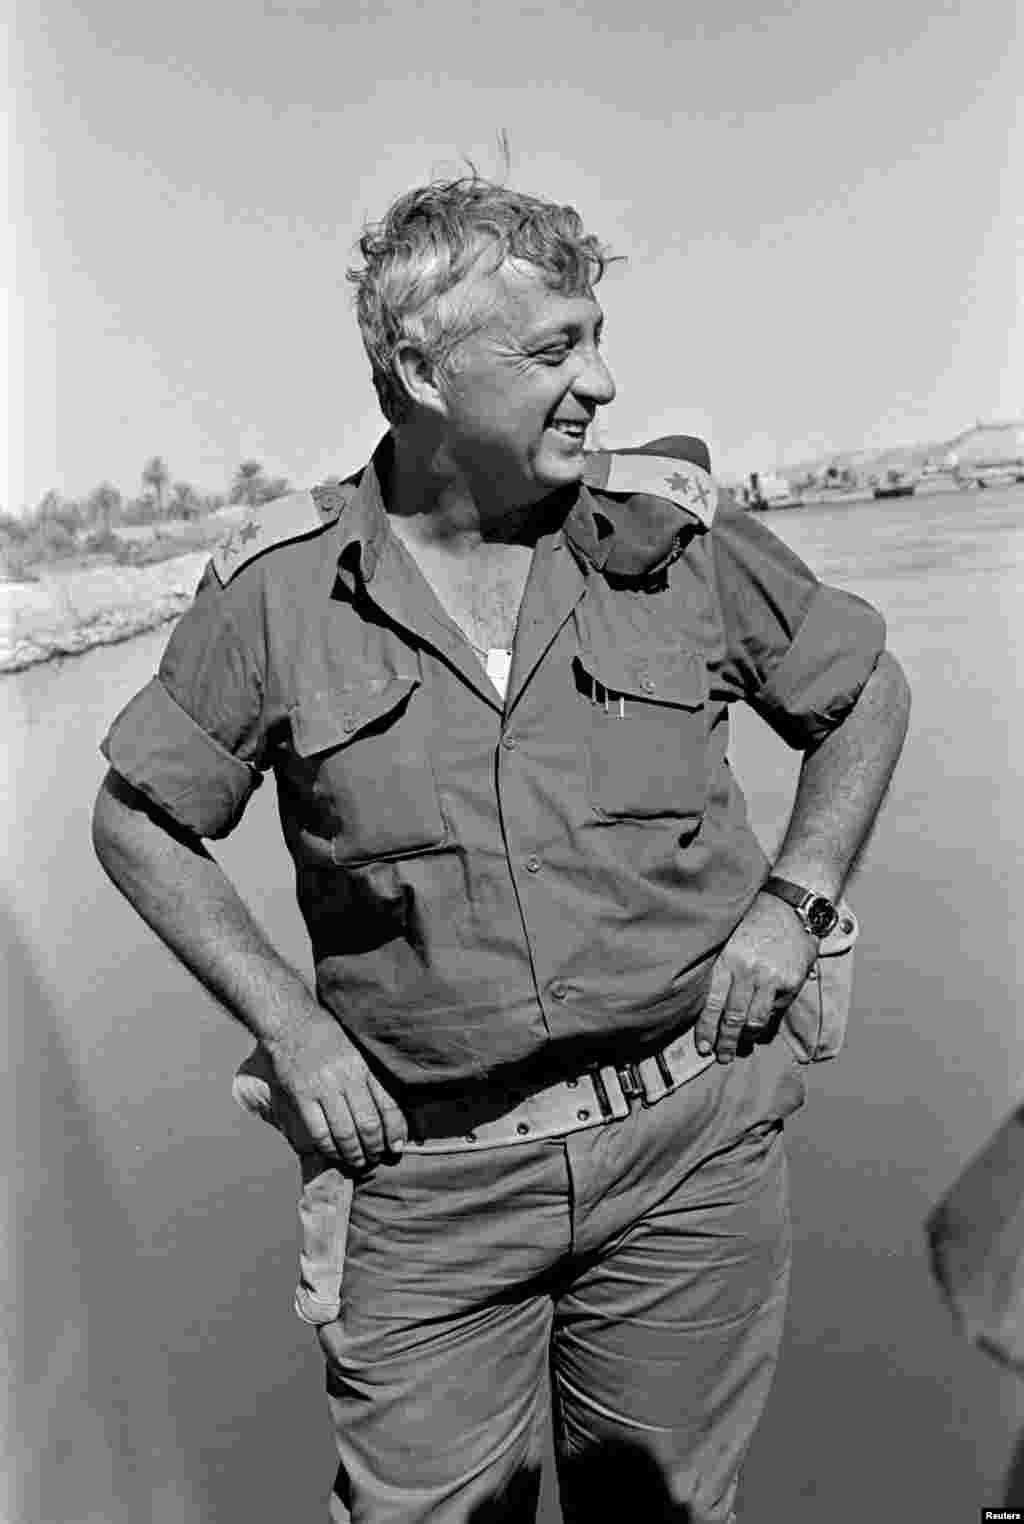 O Major General  israelita na Reserva, Ariel Sharon, sorri junto ao Canal do Suez, ocupado na altura por Israel, Out. 31, 1973.